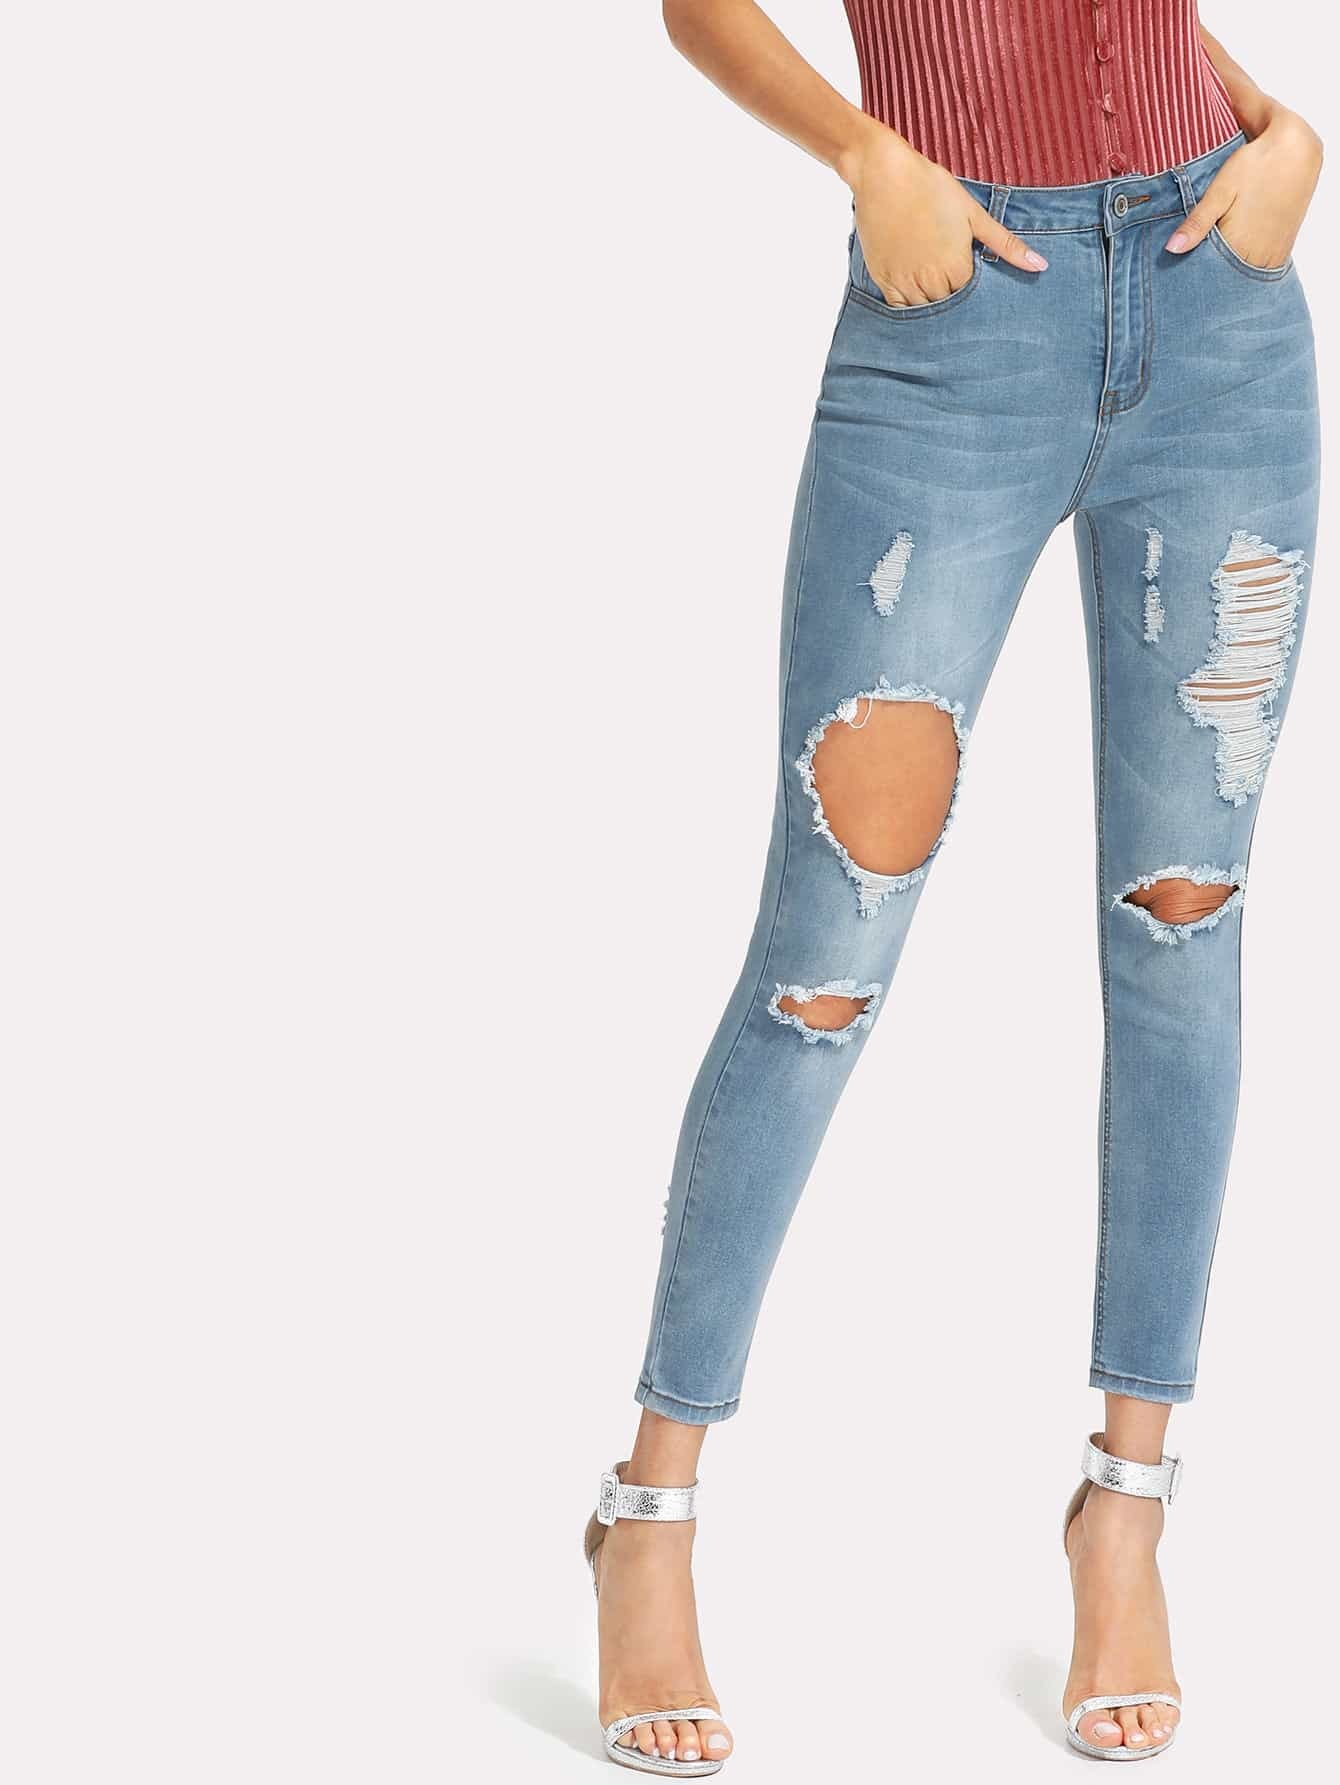 Bleached Wash Ripped Crop Jeans boyfriend hole ripped low waist jeans women vintage lace floral cool denim pencil pants lady bleached washed push up jeans femme